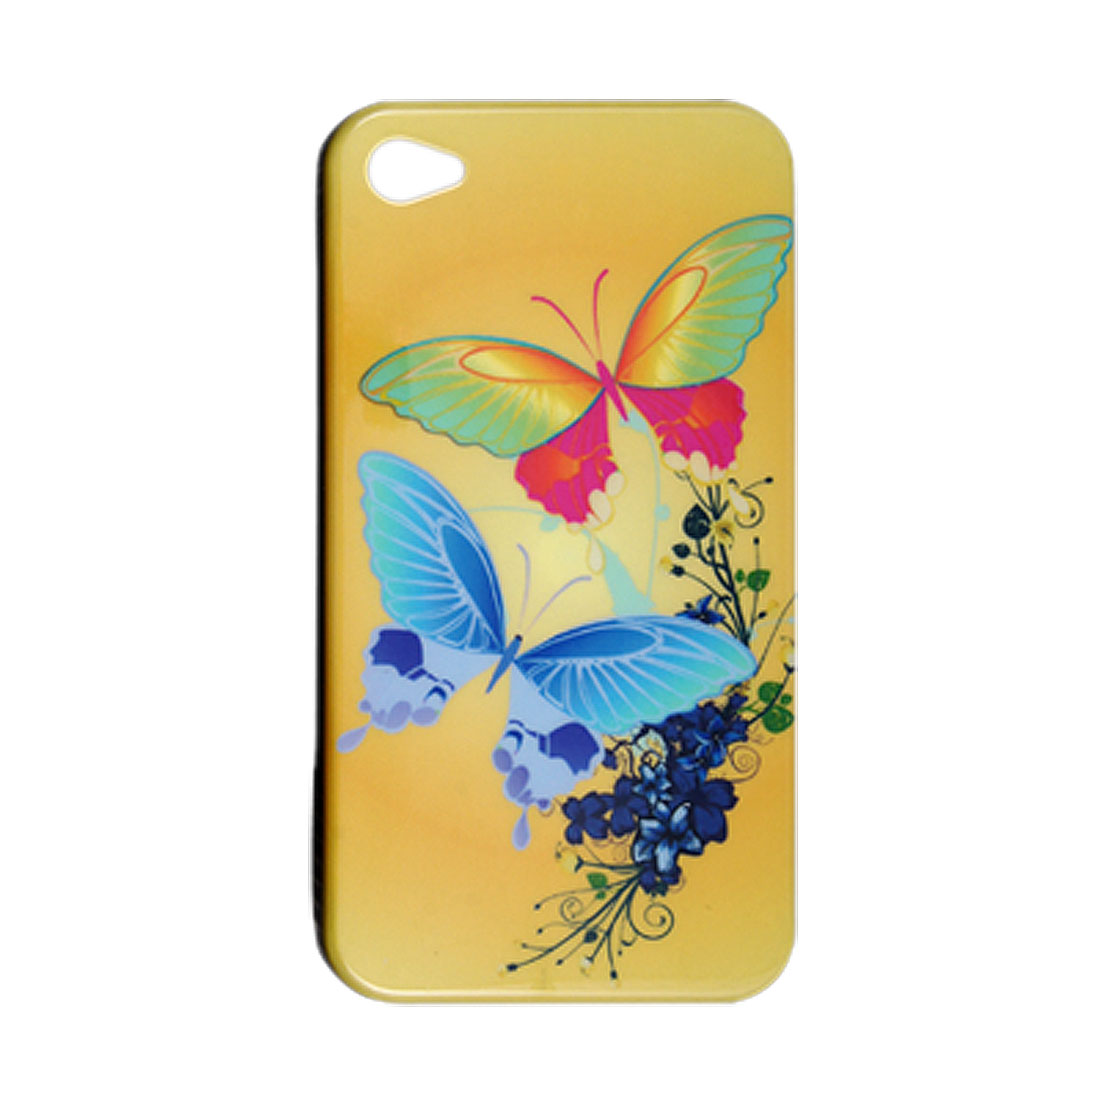 Hard Plastic Two Butterflies Printed Back Case for iPhone 4 4G